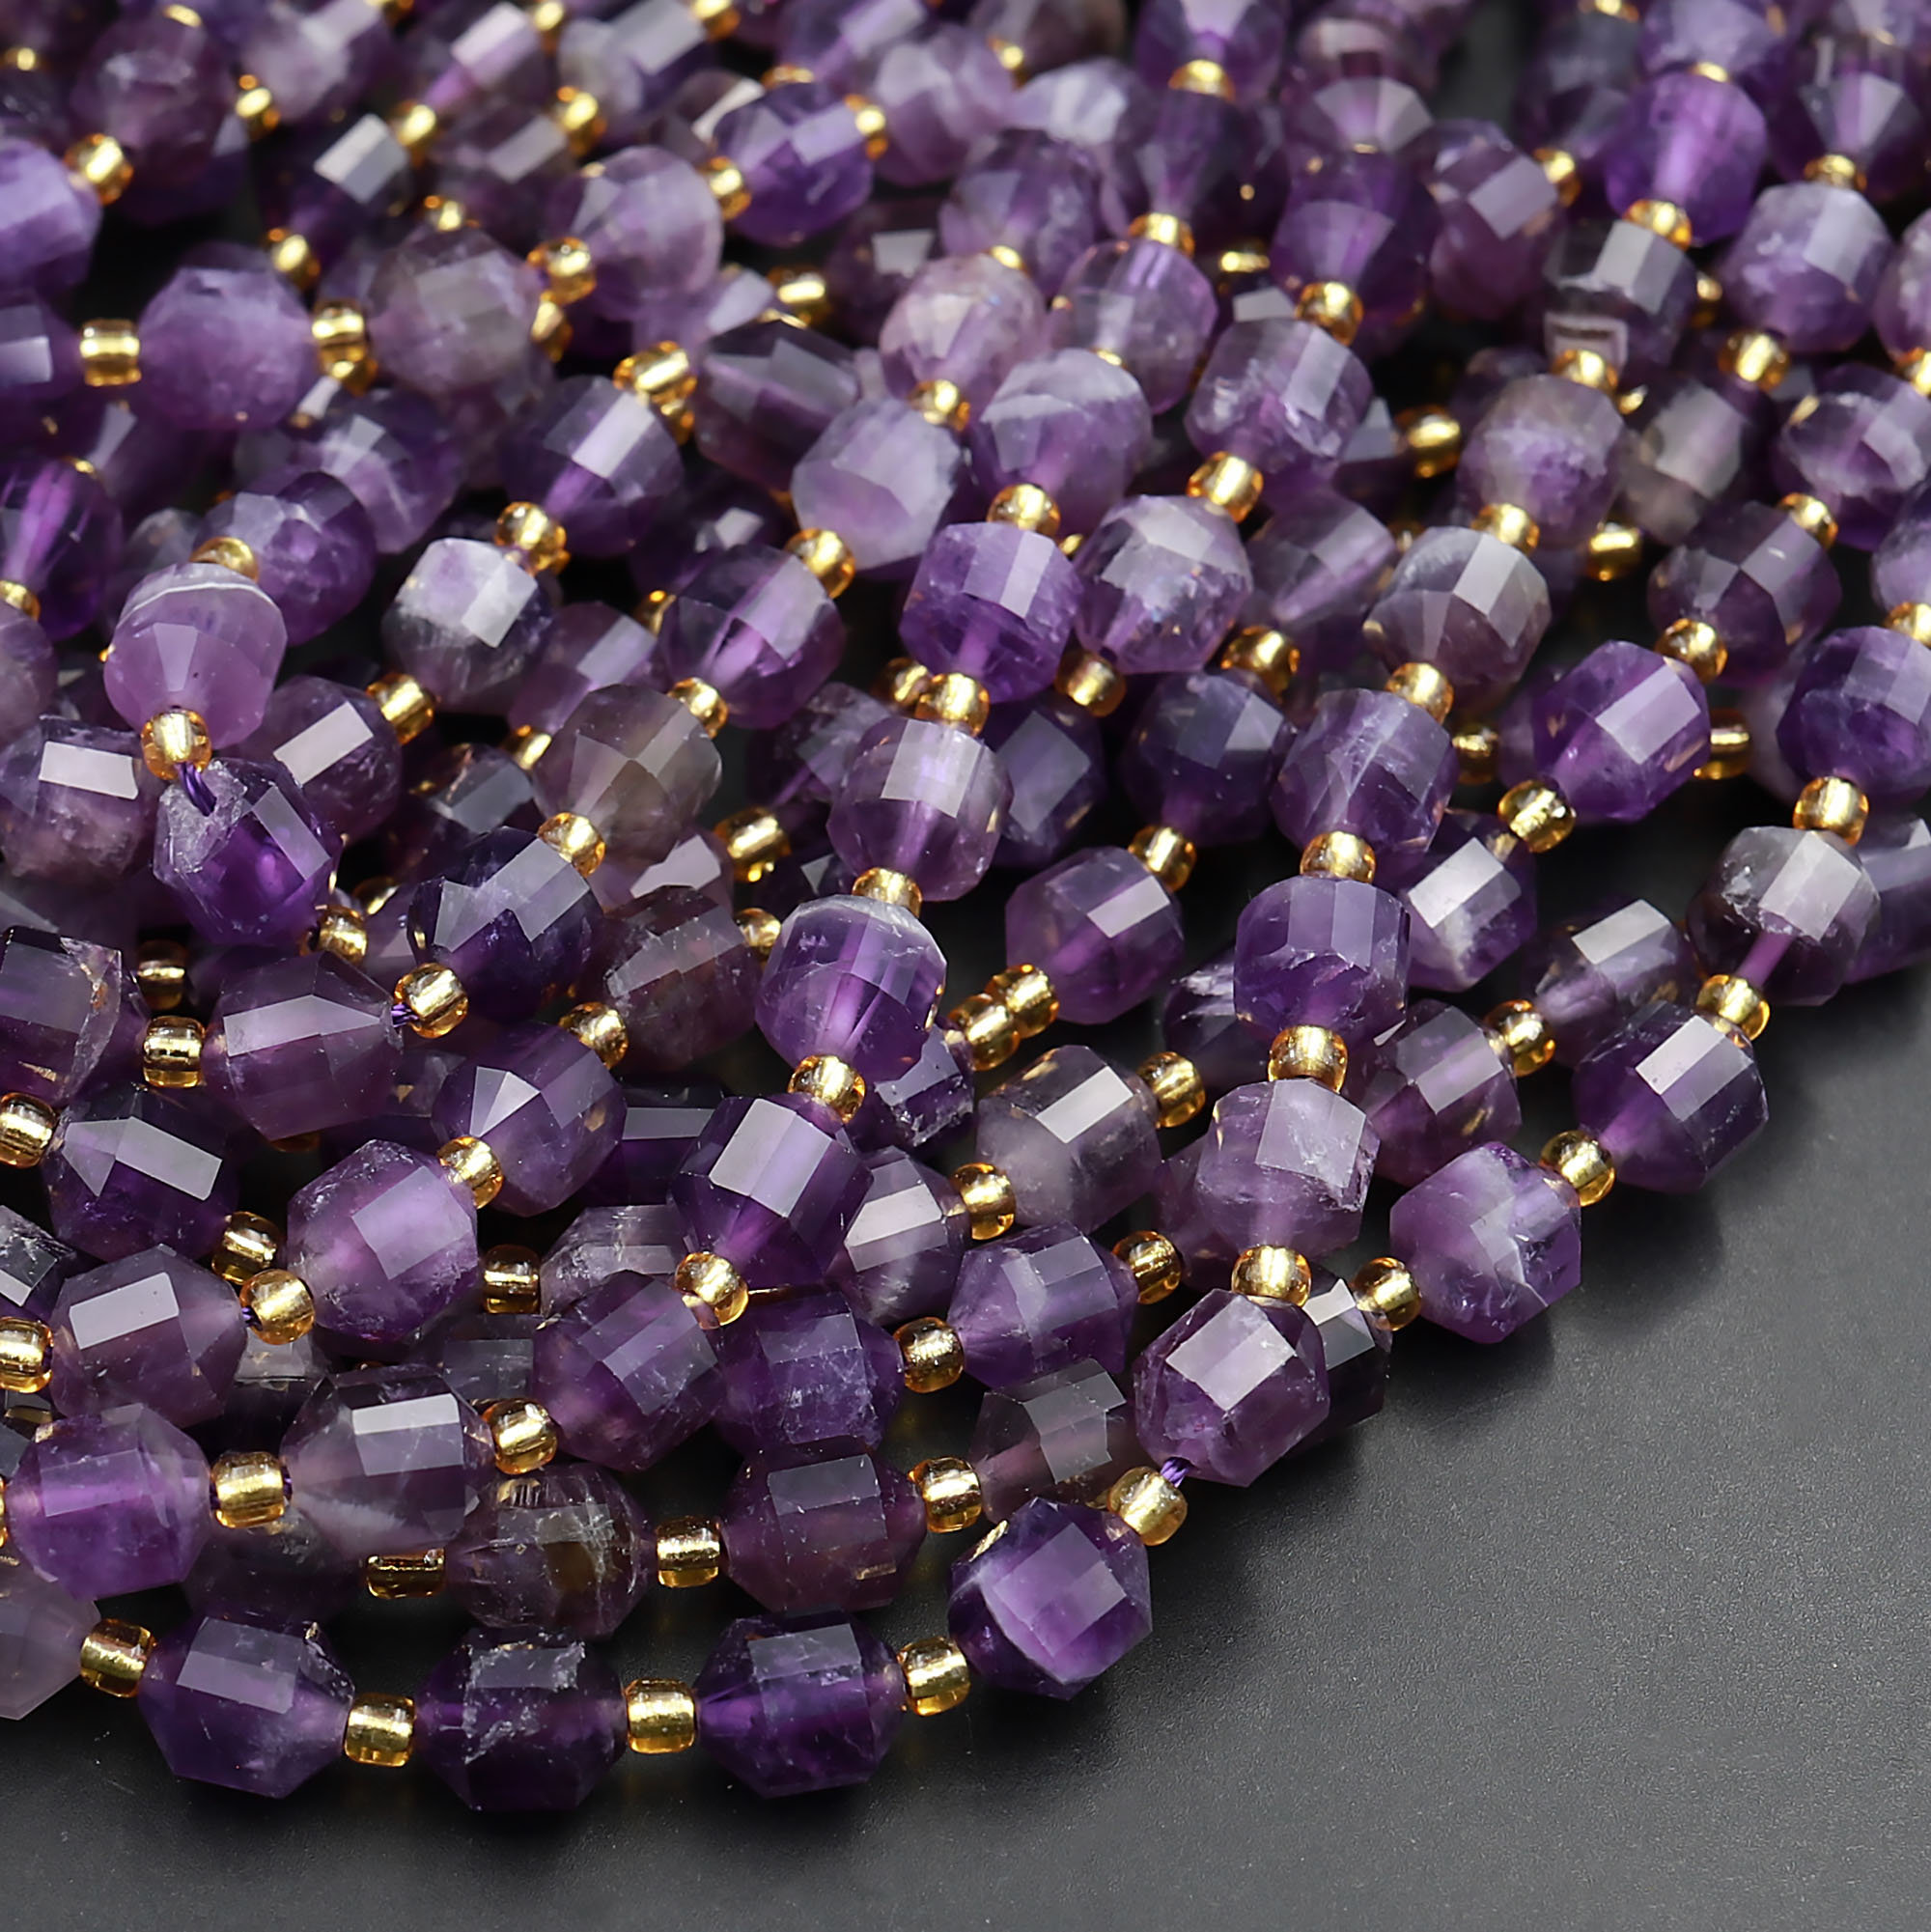 AAA Natural Purple Amethyst Faceted Rondelle Loose Gemstone  Beads,Amethyst Rondelle,Purple Amethyst,Amethyst Gemstone,8/'/' 8MM Beads,Cheap